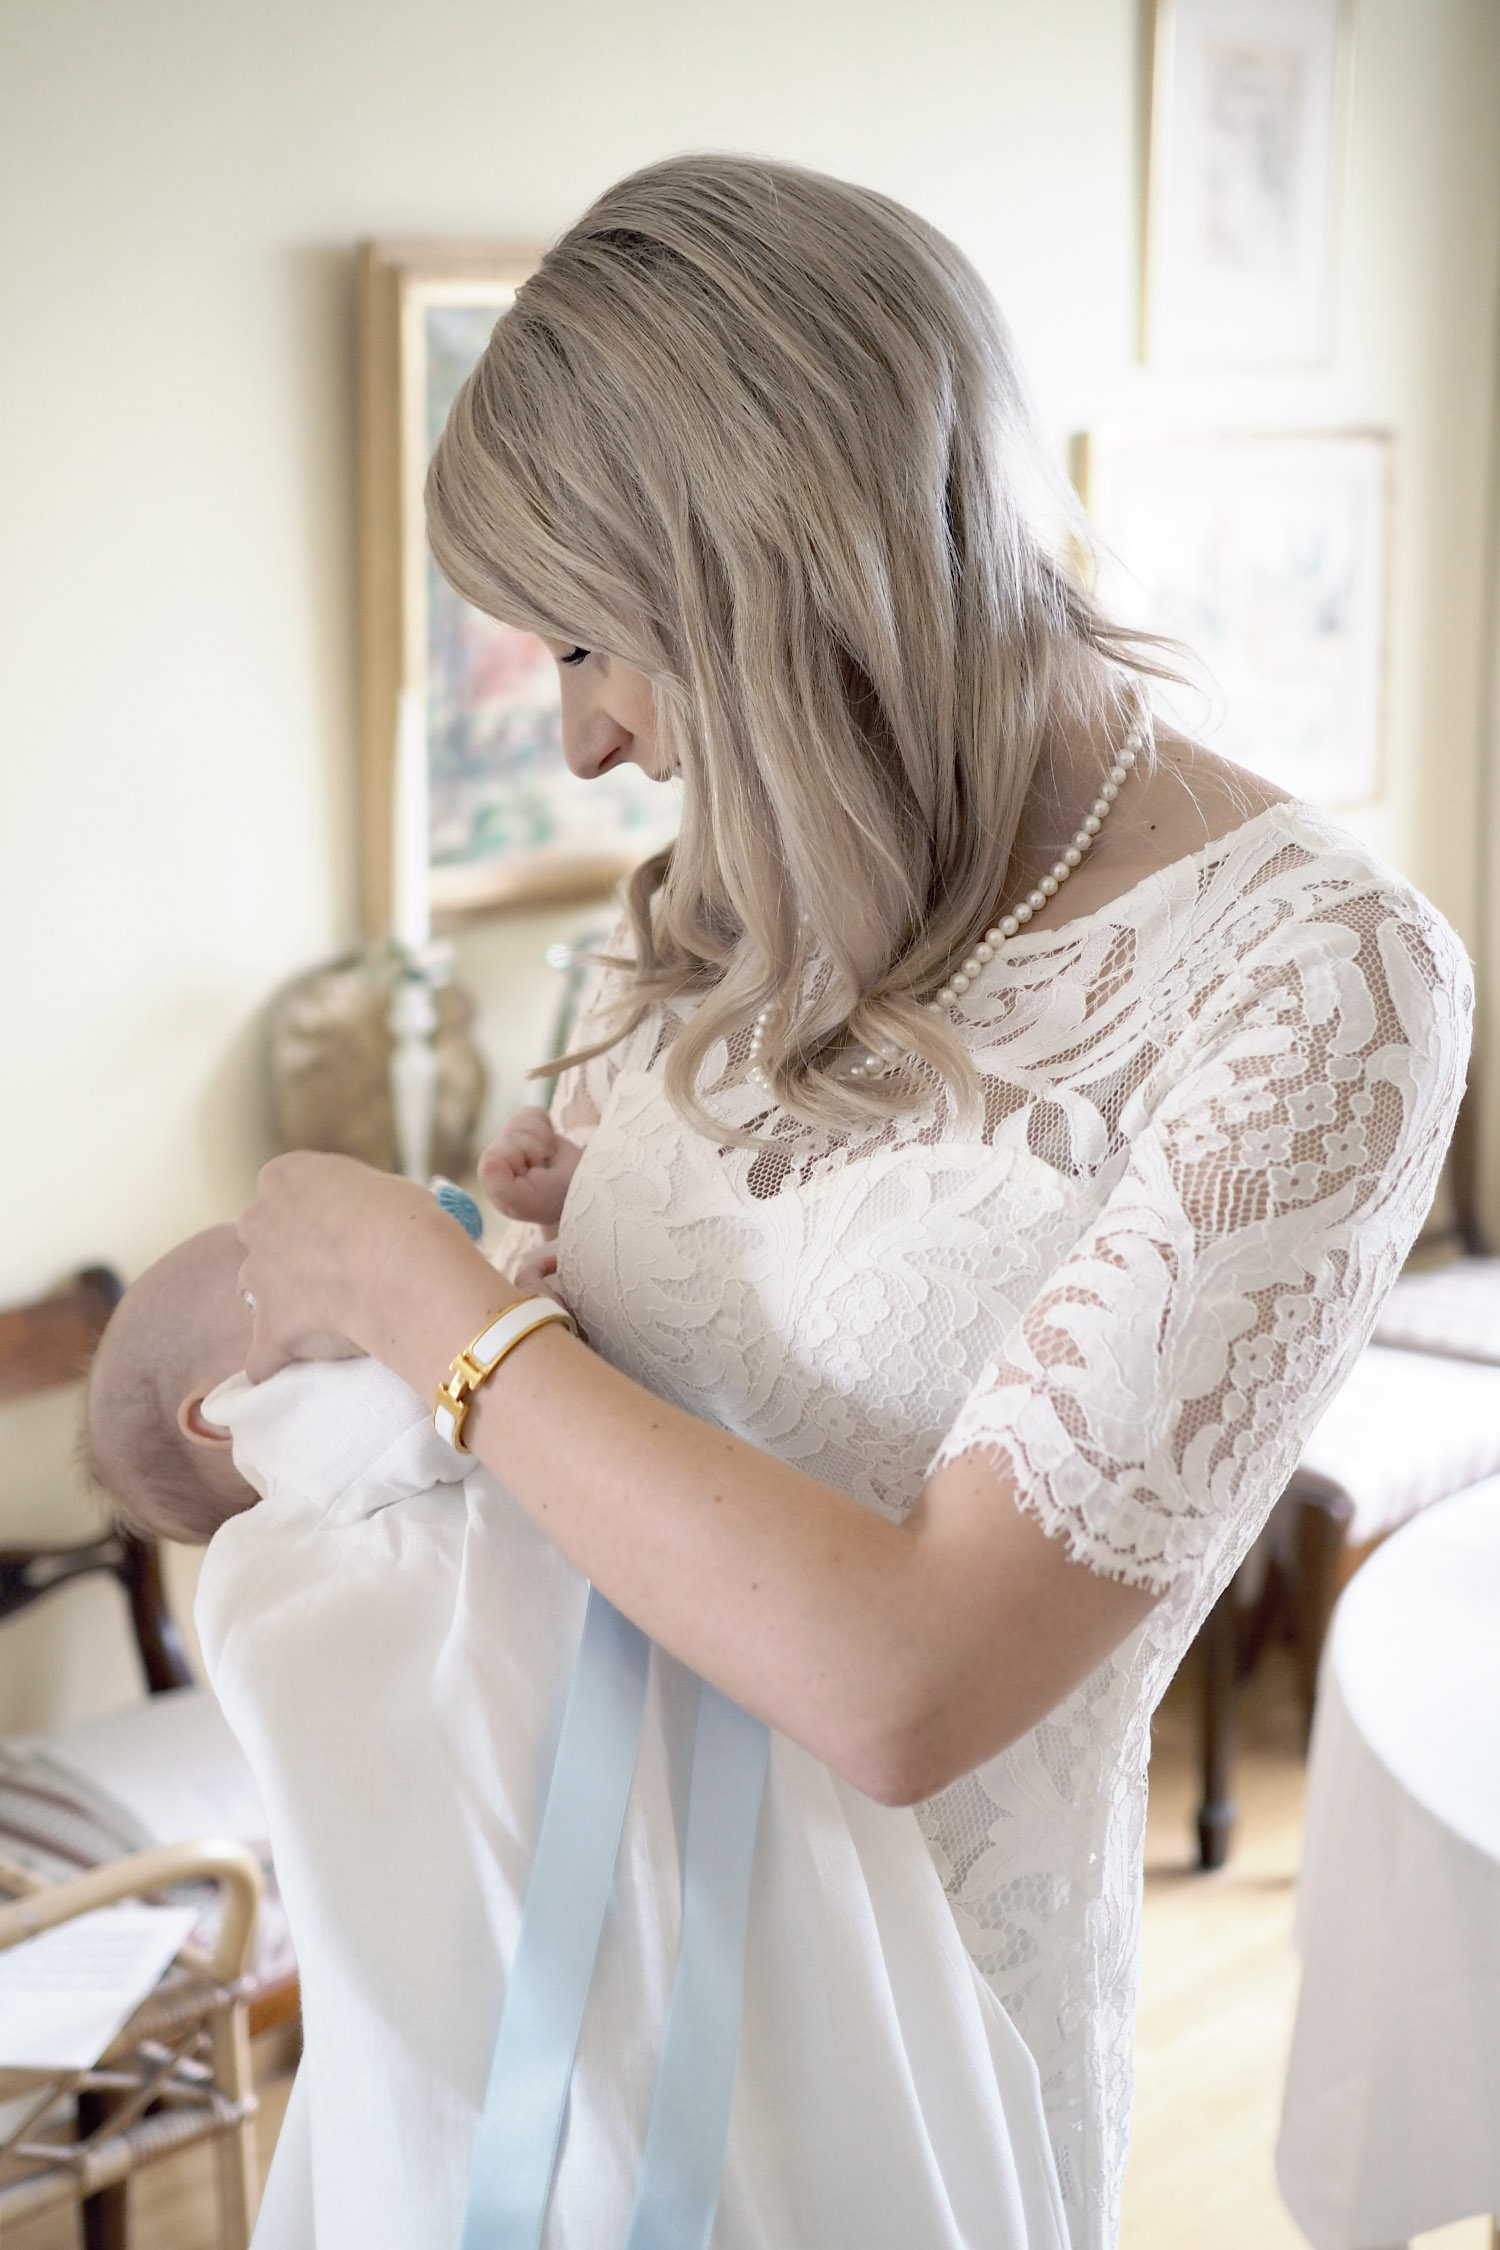 Char and the city, ristiäiset, The art of cakes, Christening, lace dresses